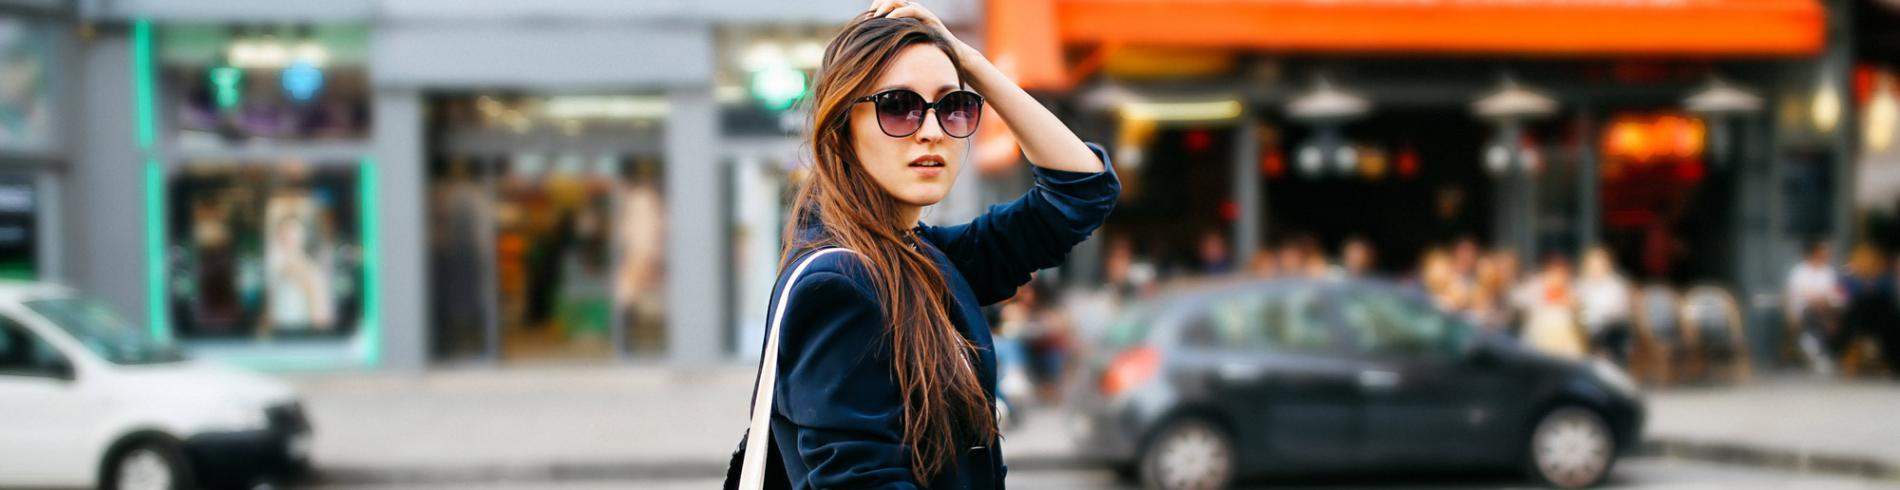 Stylish woman with shopping bag and sunglasses